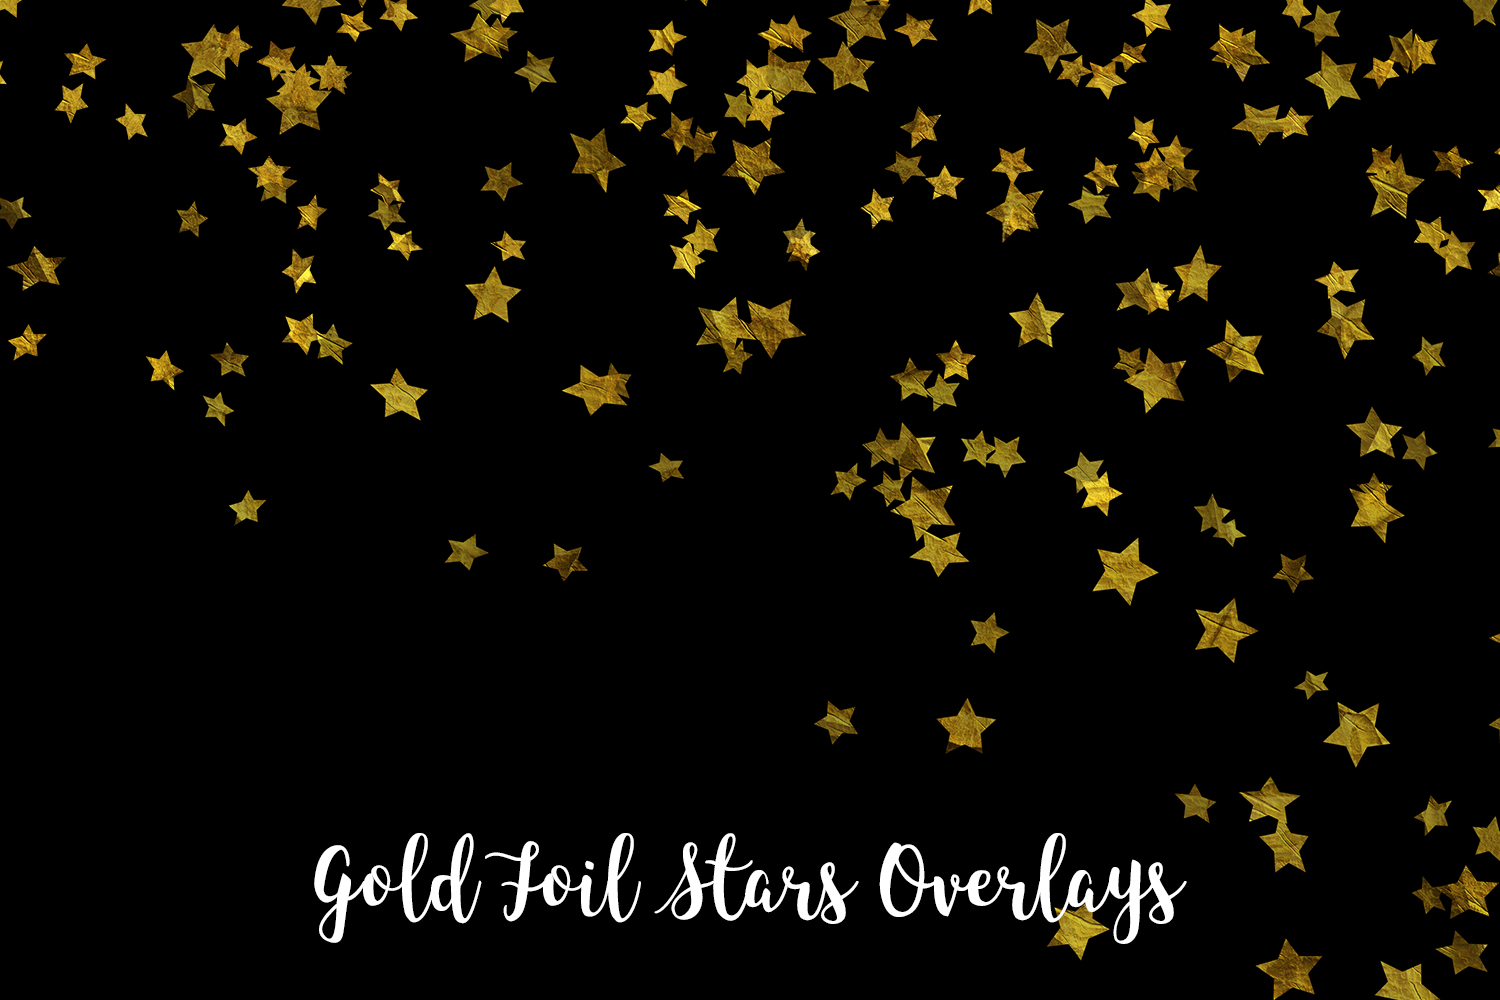 Gold Foil Stars Overlays, Gold Stars Confetti example image 6